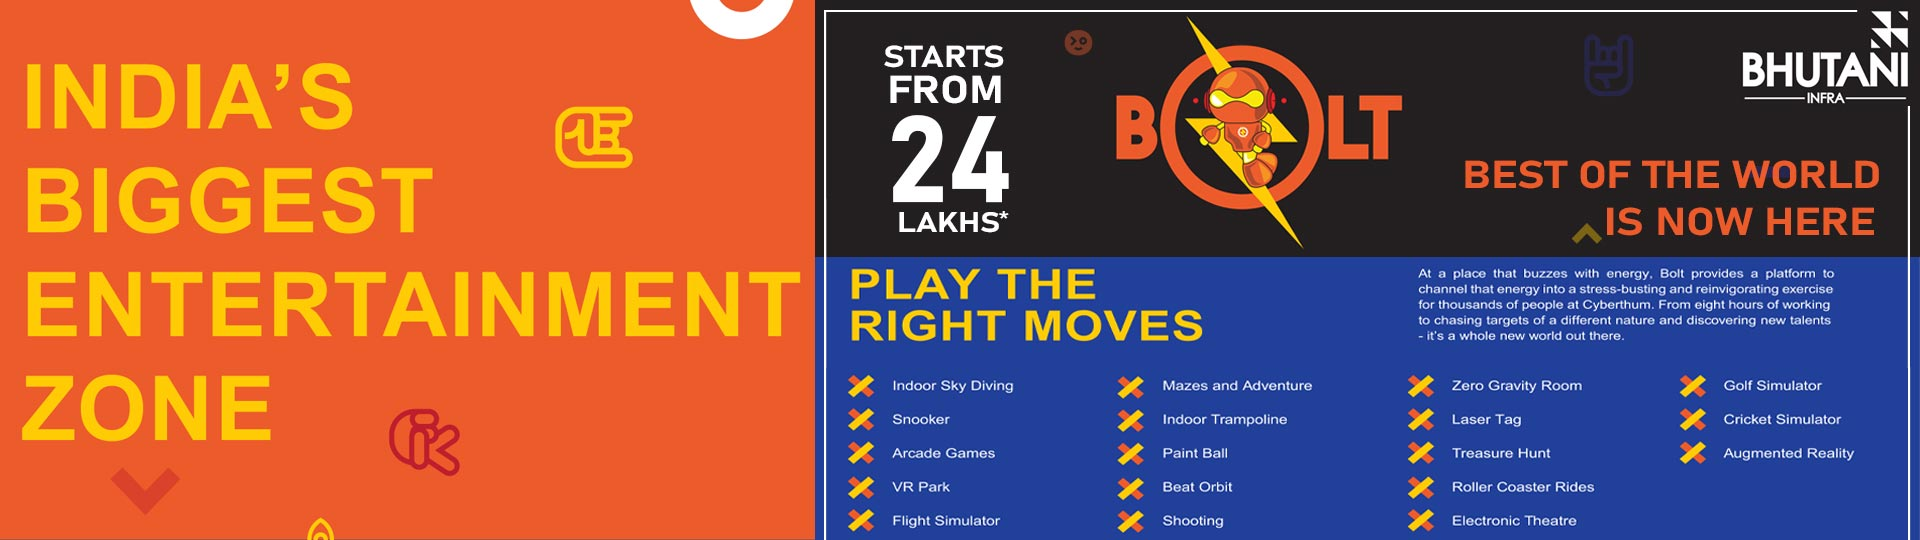 Bhutani Bolt Will Spice up Your Life with Its Soon to Come Mega Gaming Zone at Cyberthum